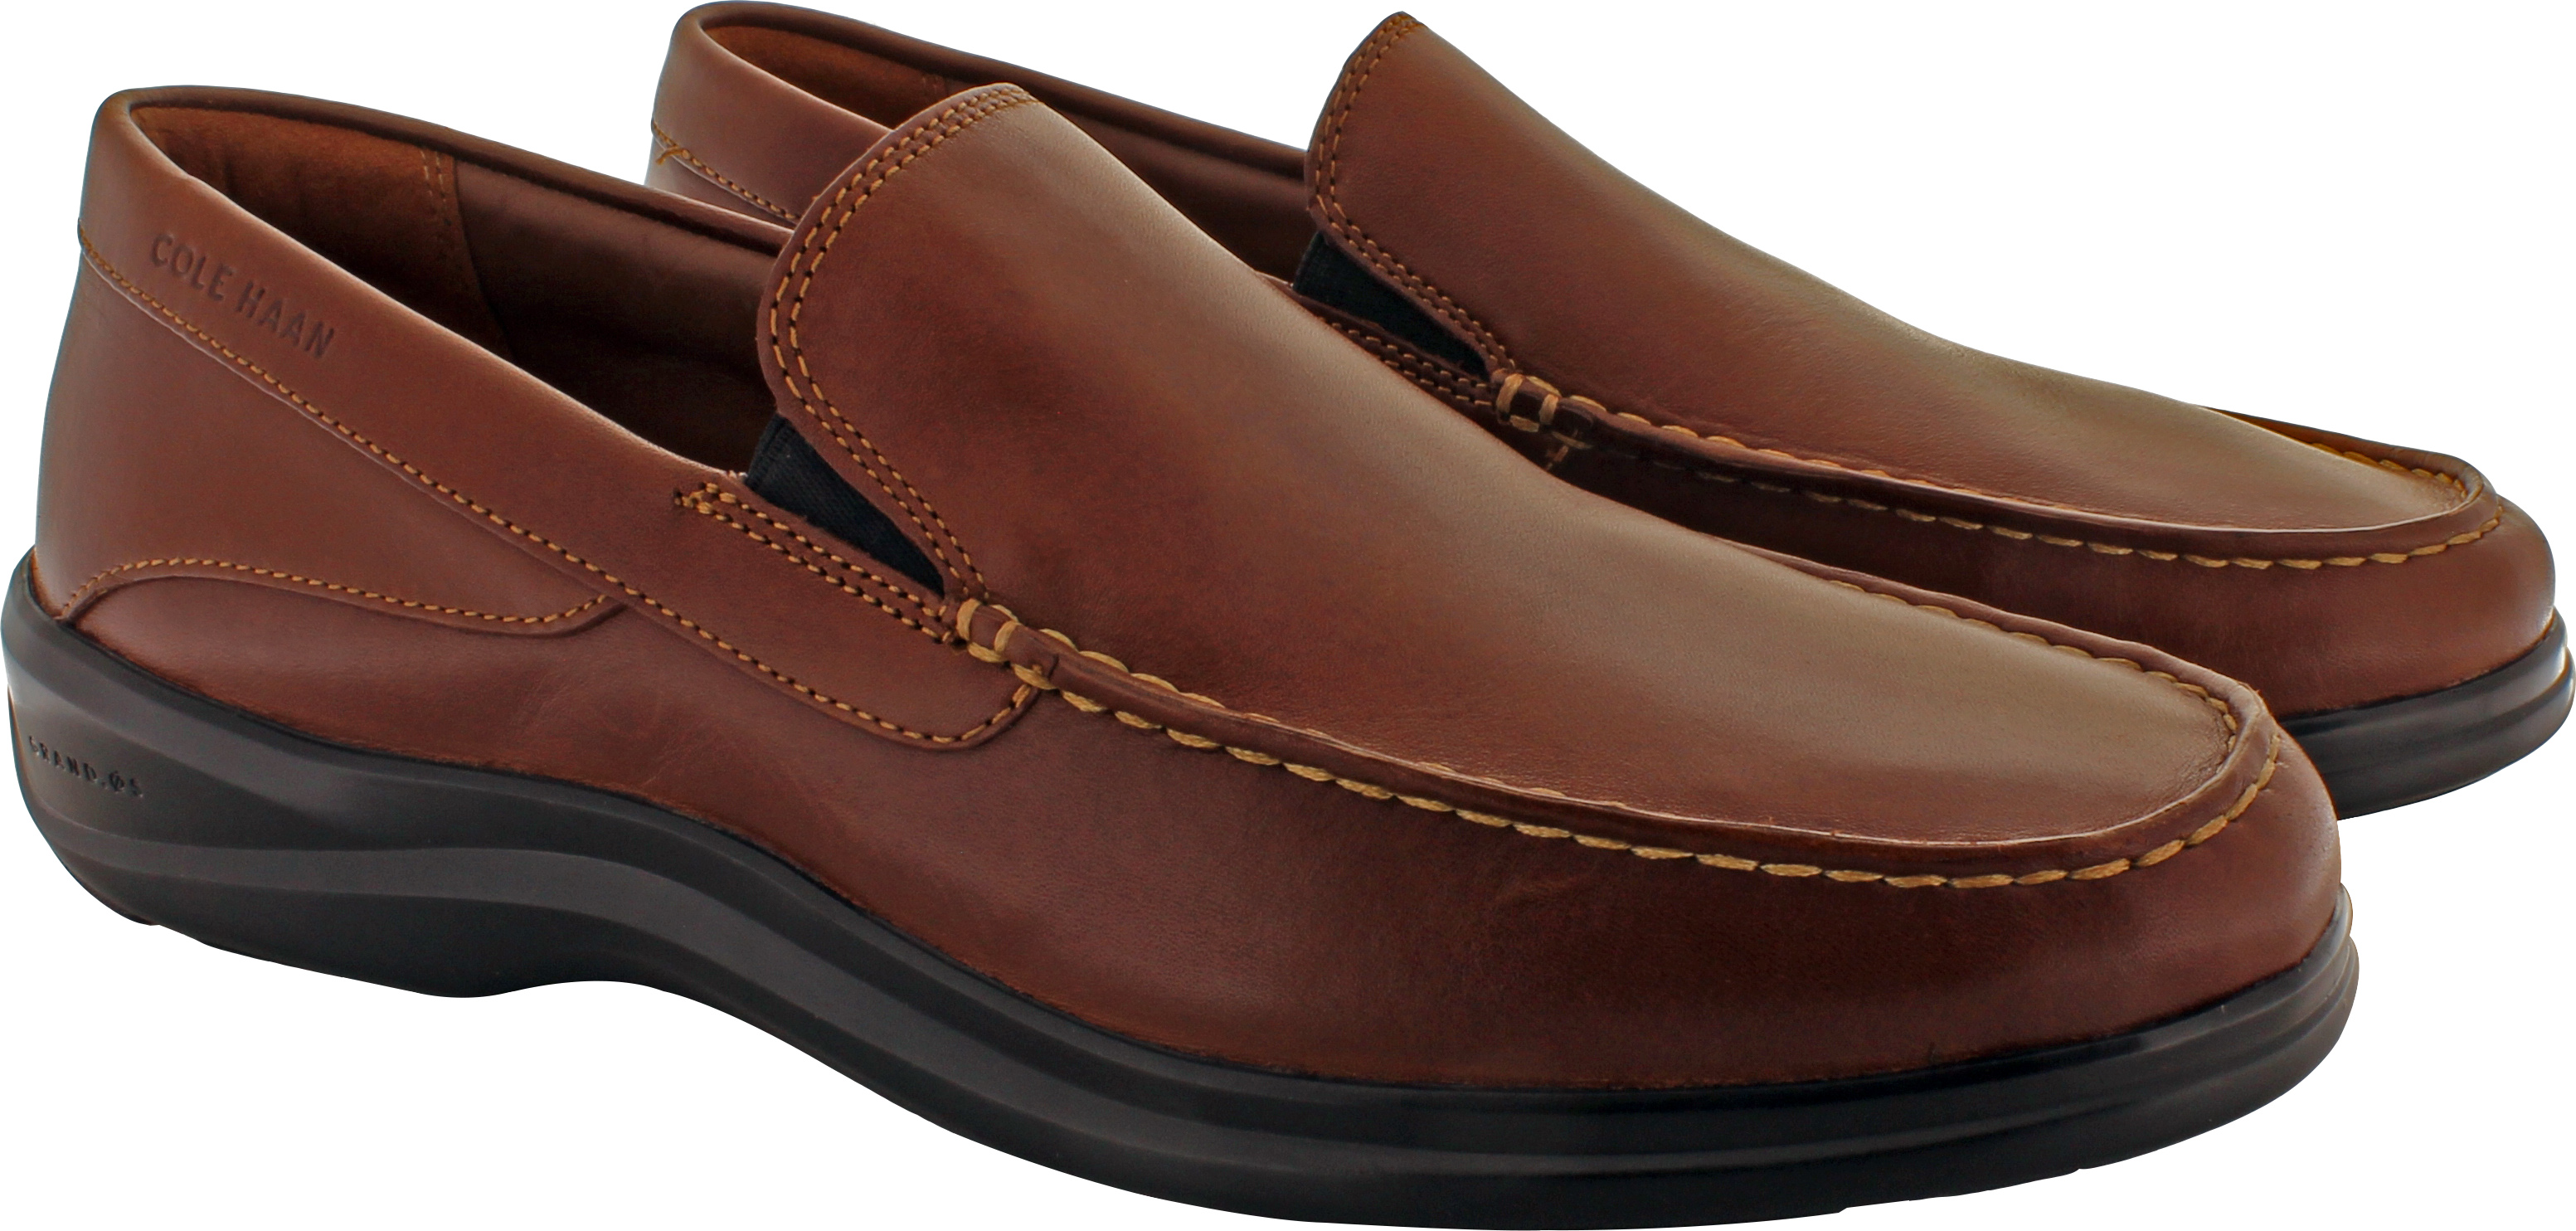 c2c851aa75b Cole Haan Men s C25936 - Santa Barbara Twin Gore Ii - The Shoe Mart